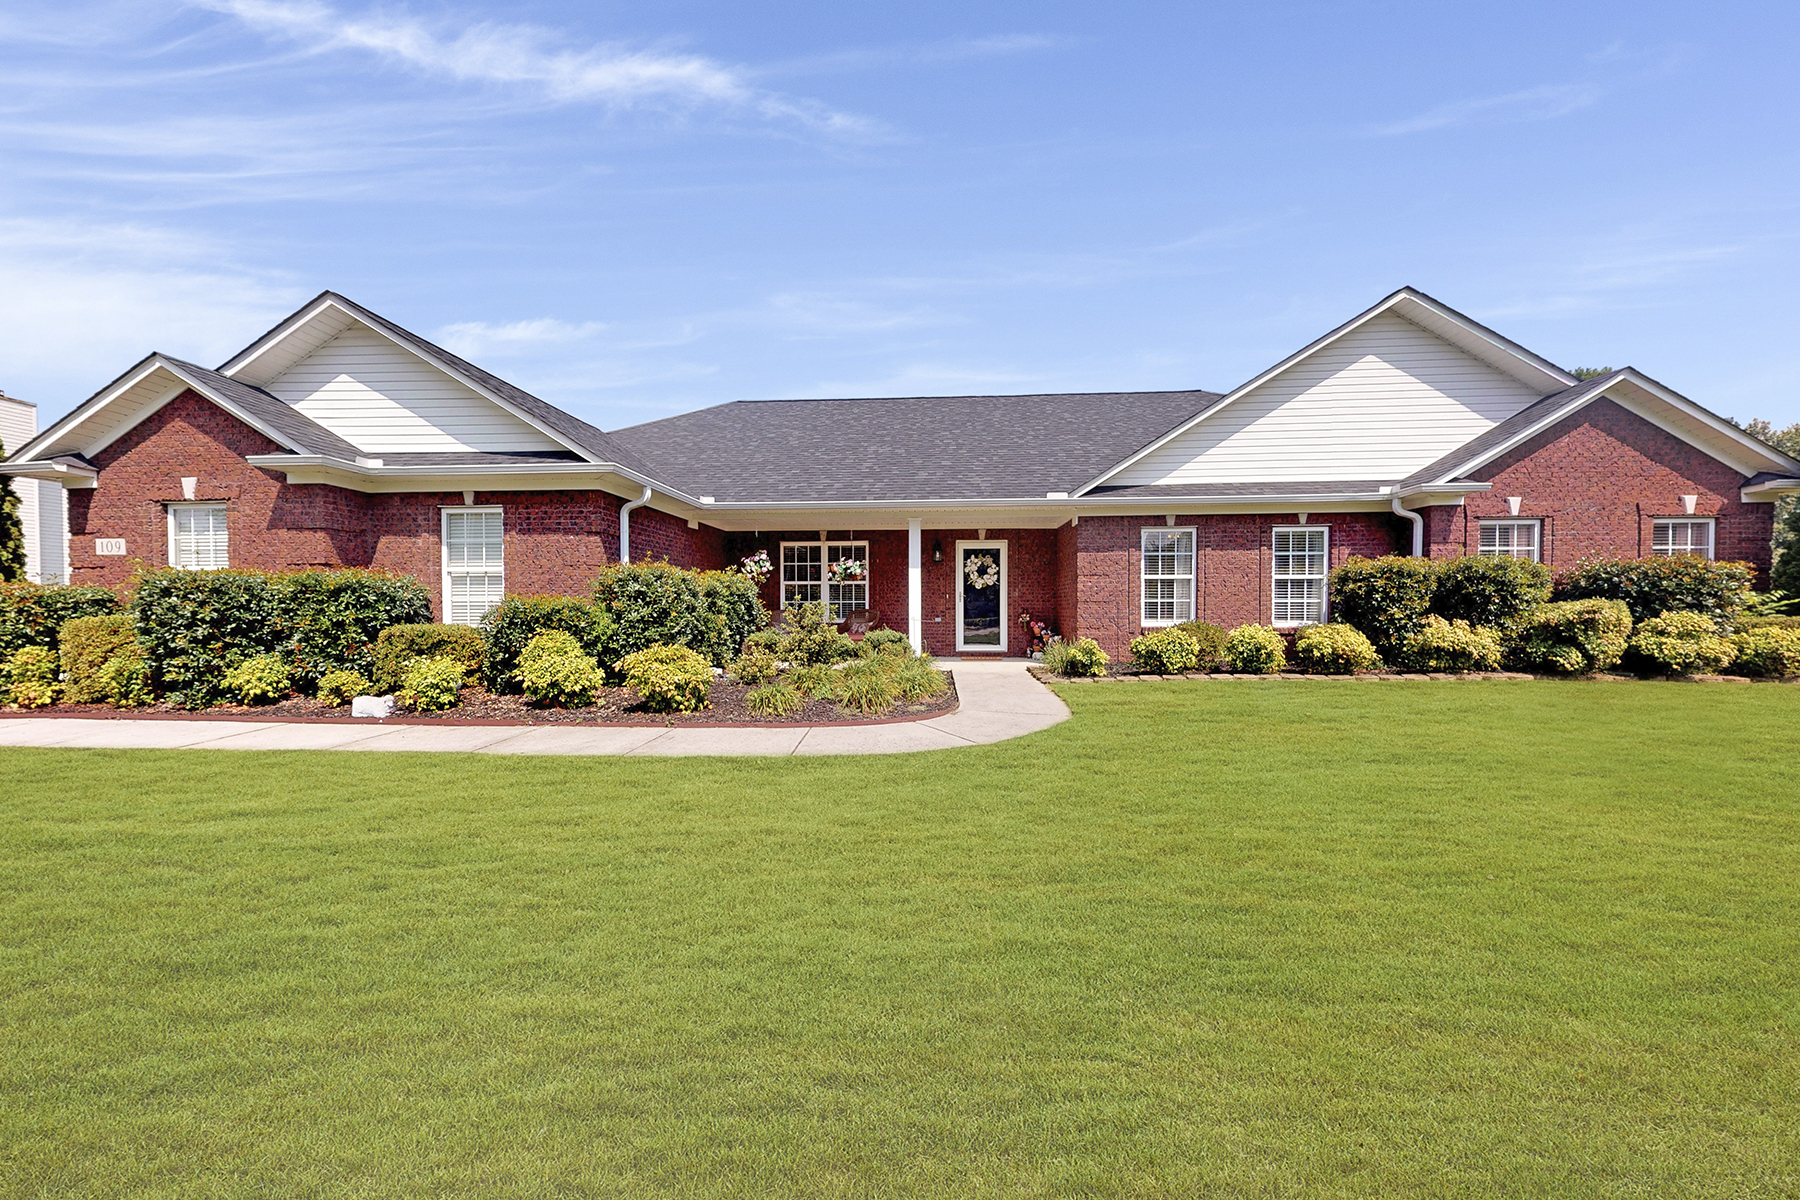 Single Family Homes for Active at 109 Sycamore Road Gurley, Alabama 35748 United States